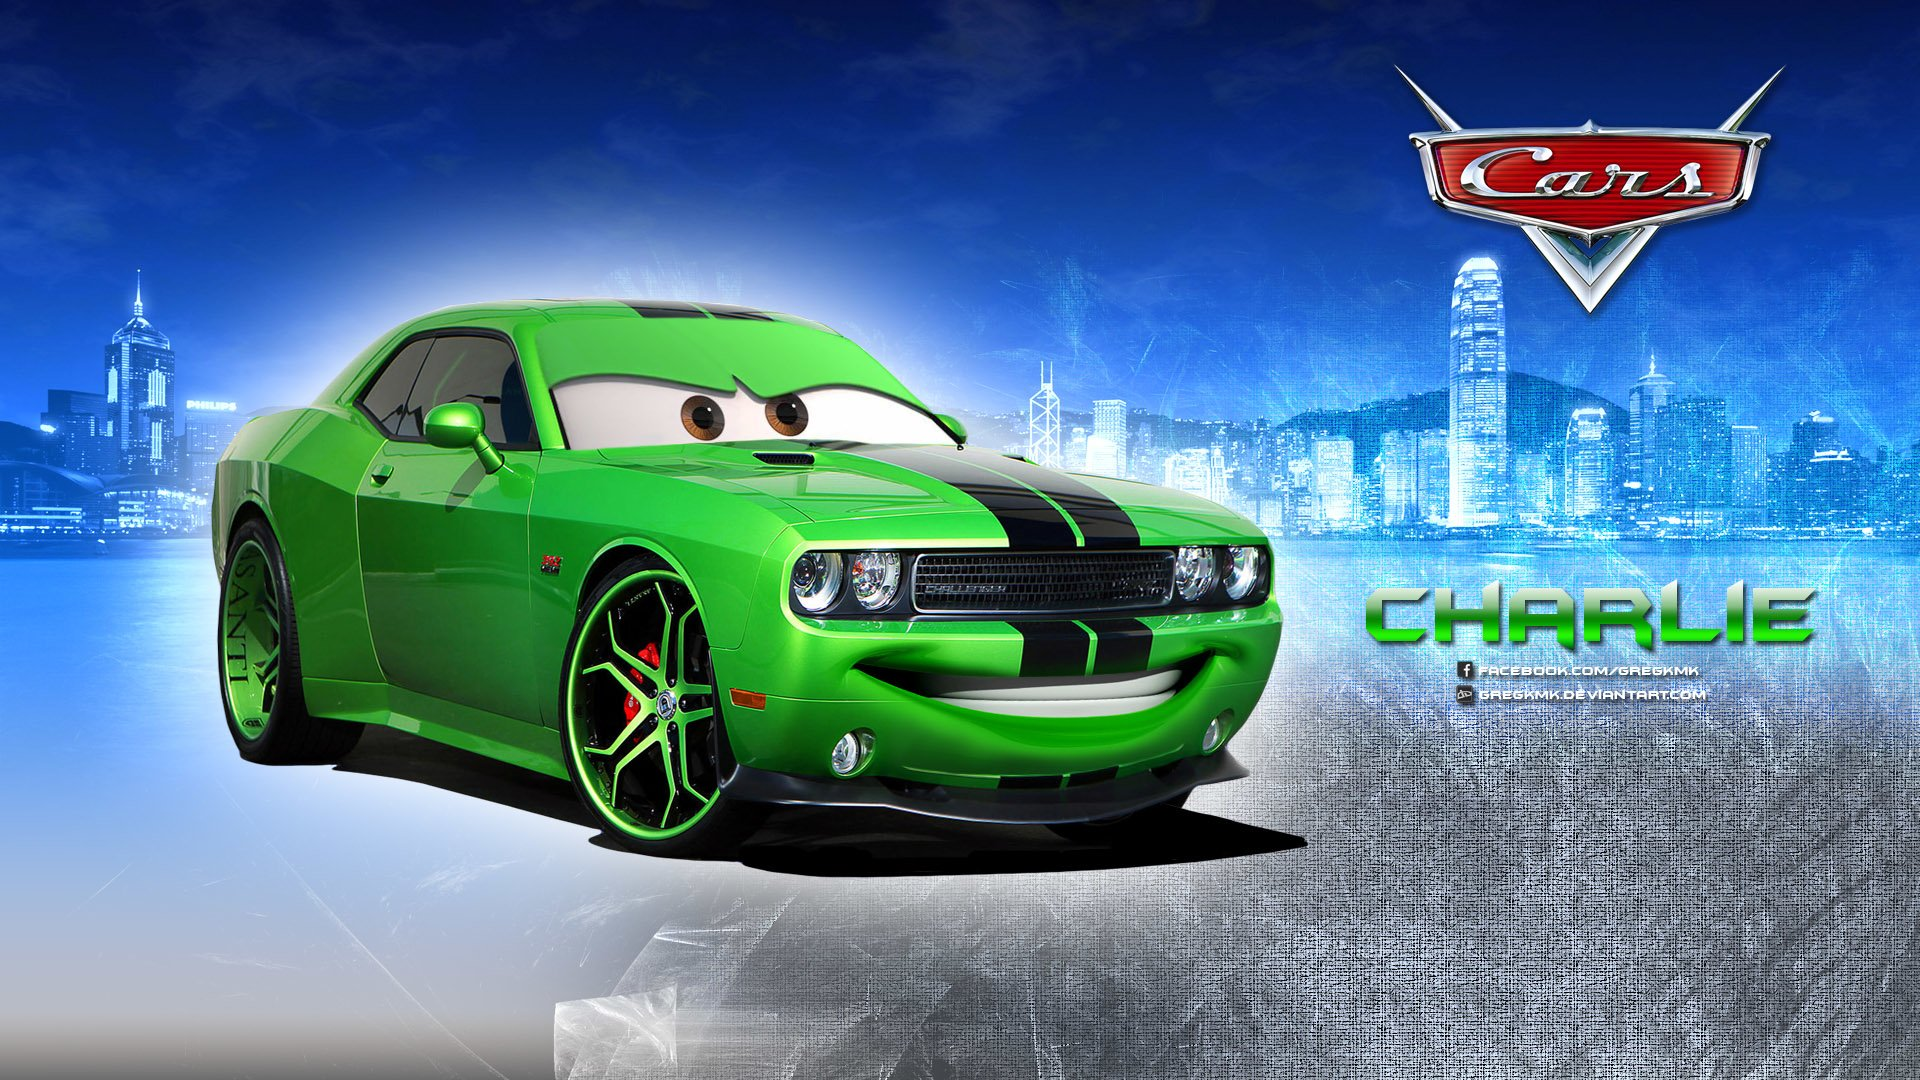 Cars Charlie Full Hd Wallpaper And Background Image